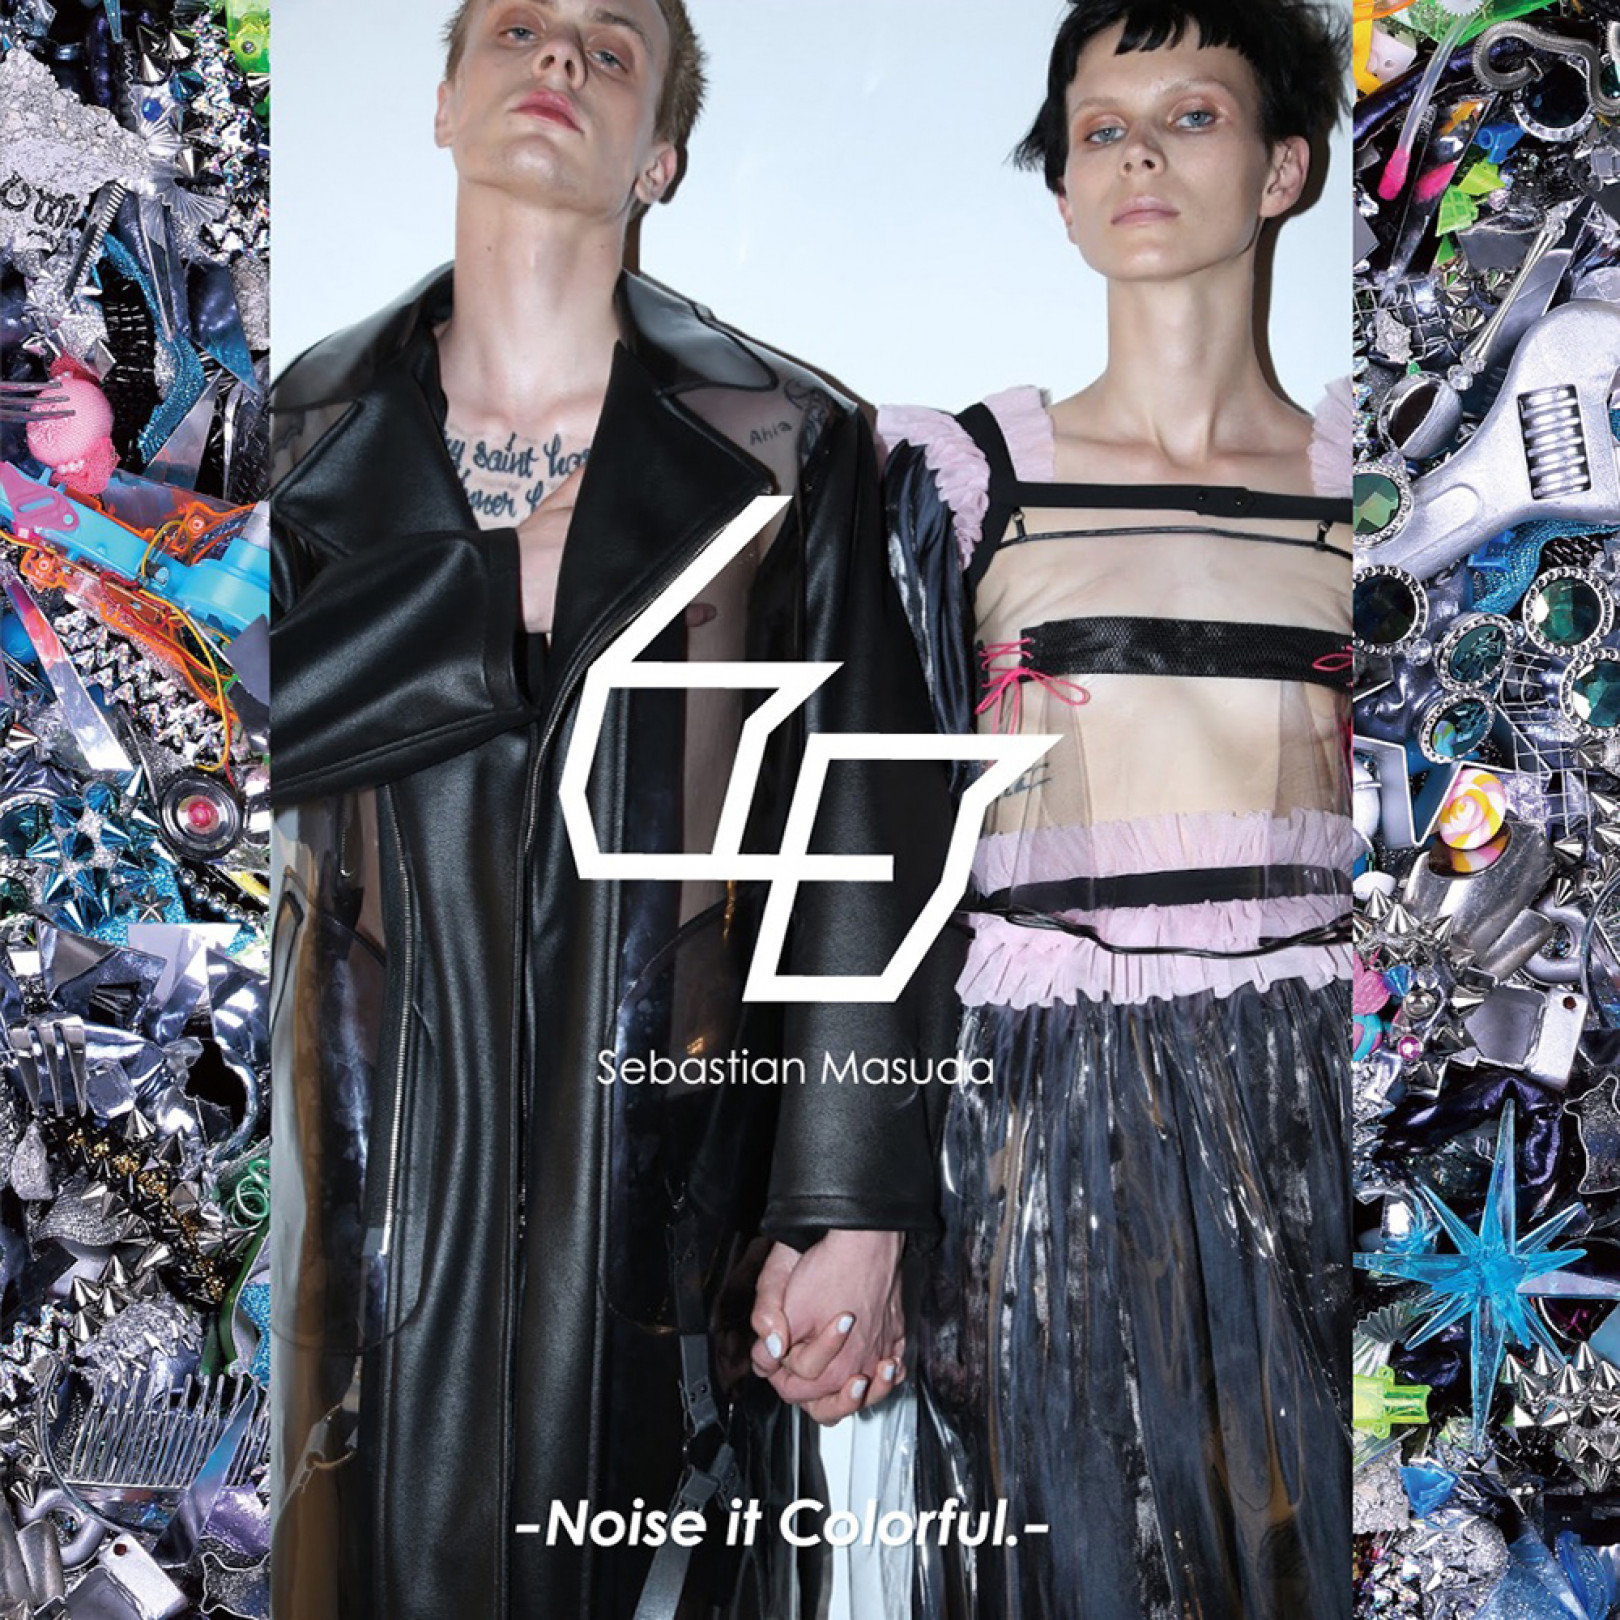 期間限定ショップ「6-D Sebastian Masuda –Noise it Colorful.-」オープン